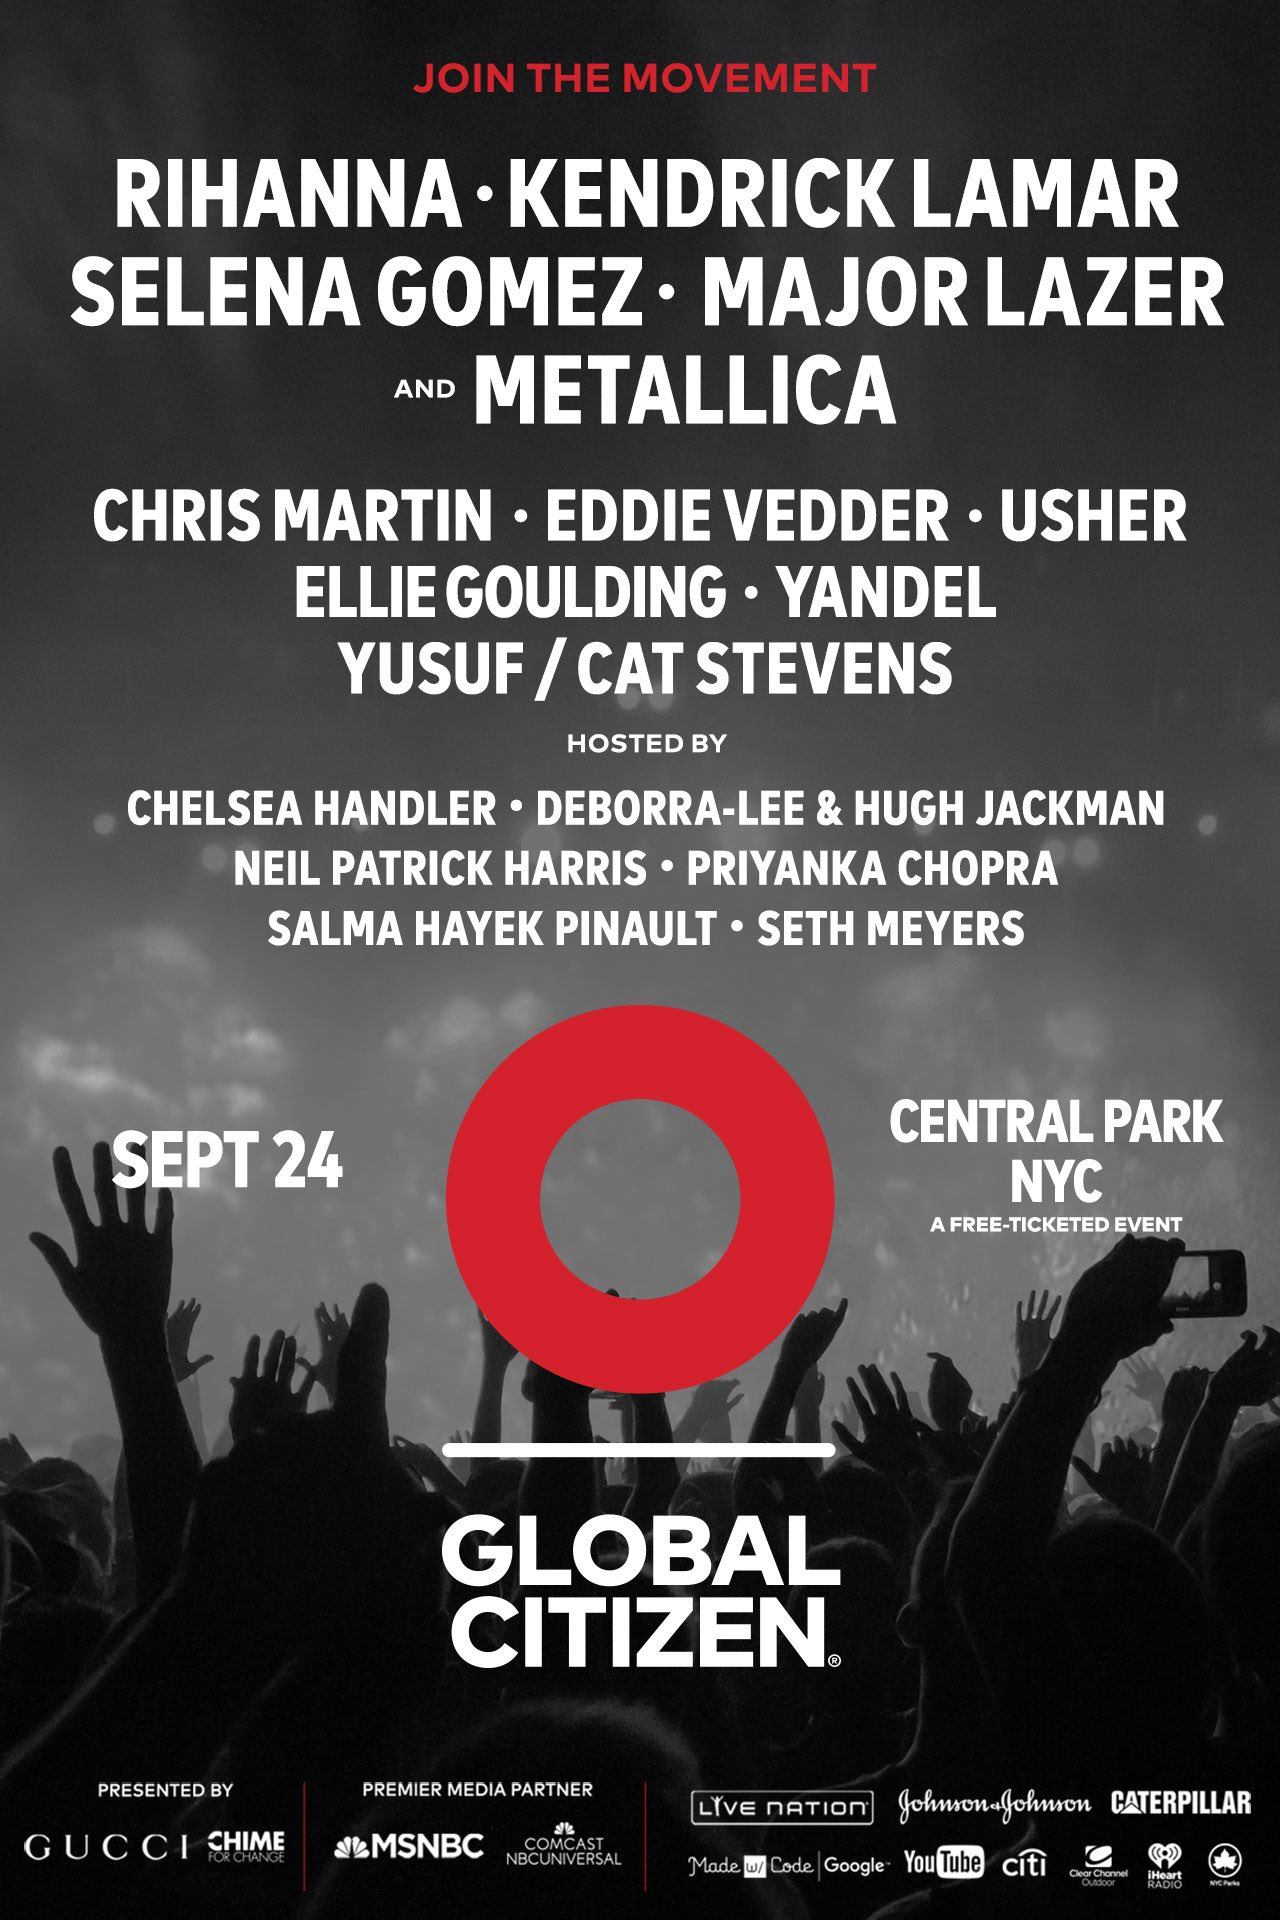 Big news! I'm playing this year's #GCFestival 9/24. Take action to earn your tickets https://t.co/Yxz04A6IcK https://t.co/YIuiG0Uole